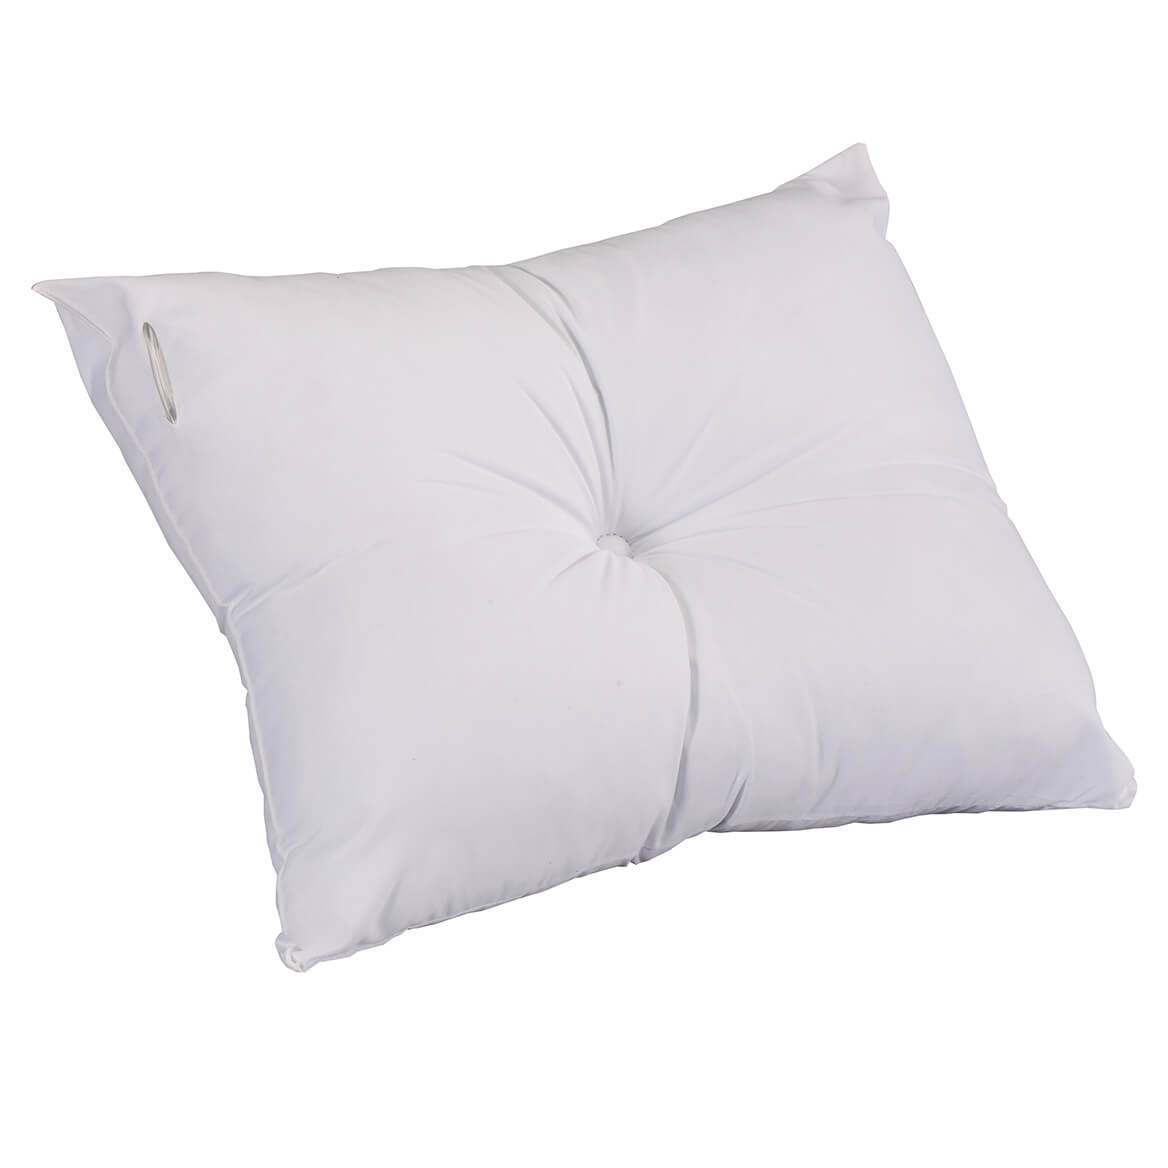 Snore-Less Pillow-362978